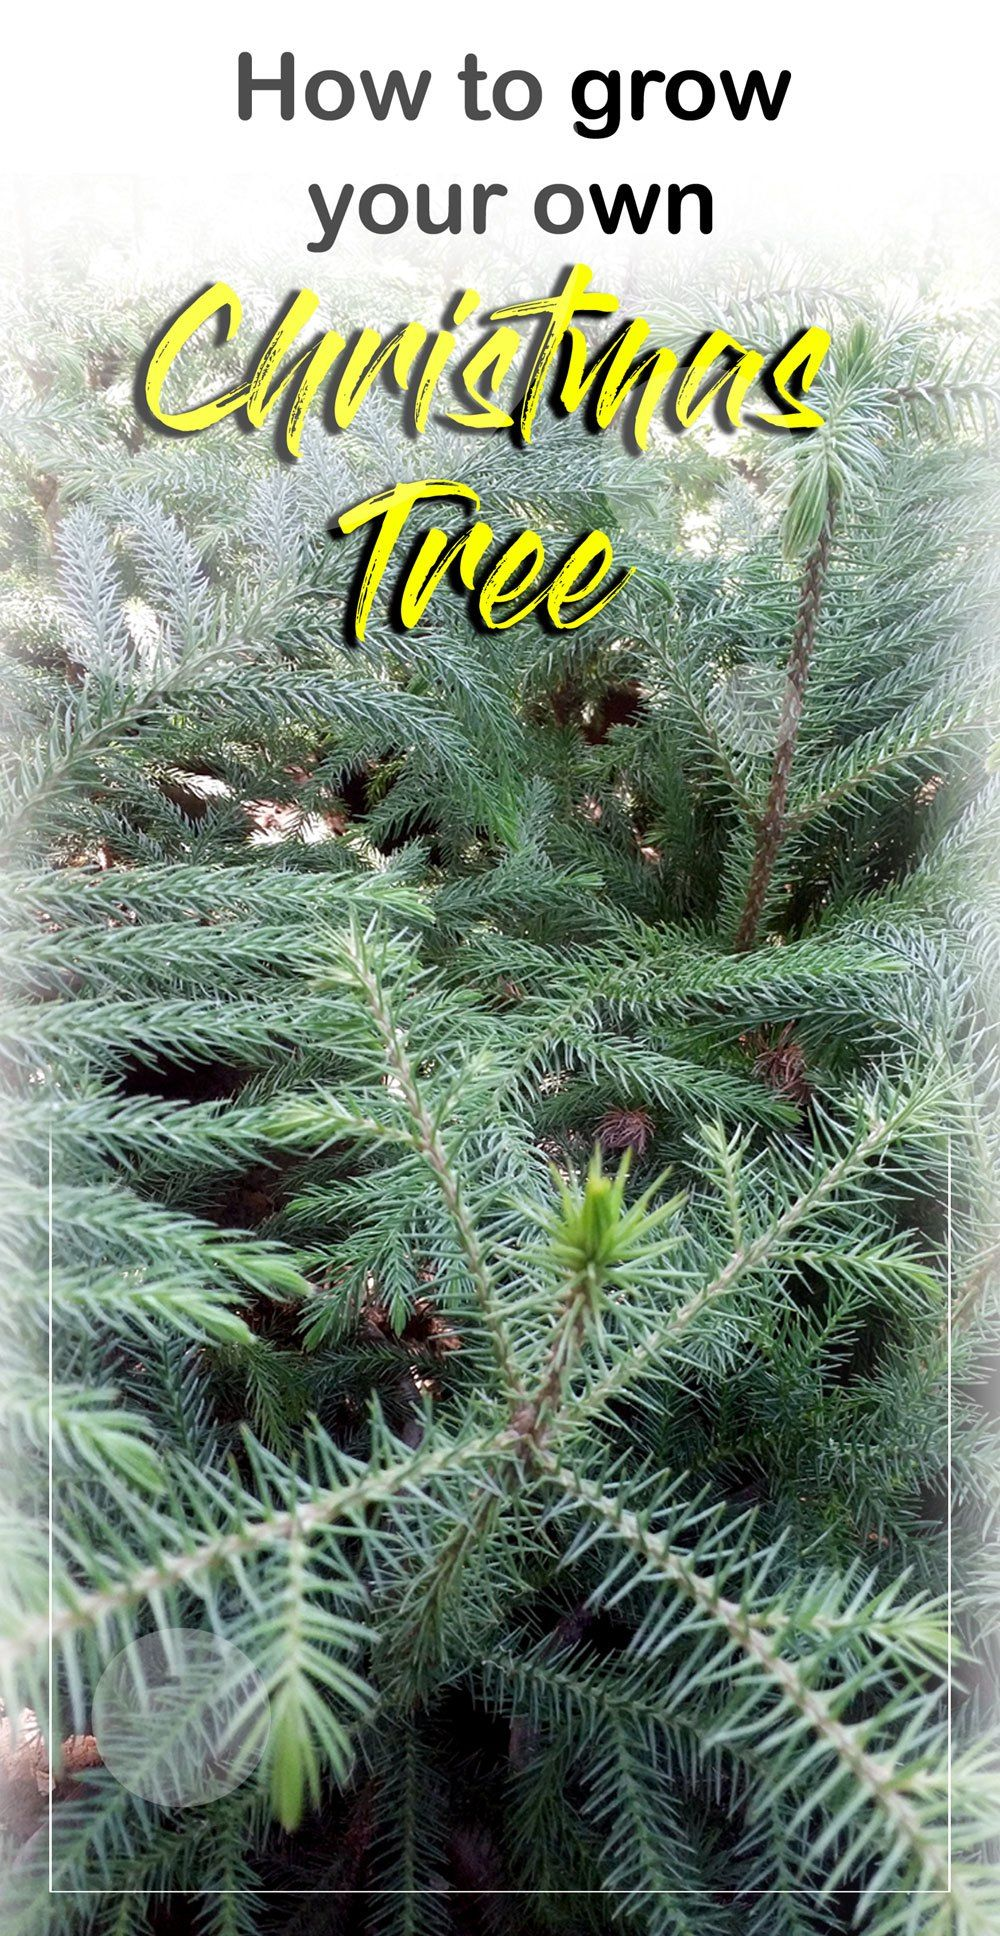 How to grow your own Christmas Tree | Growing tree, Christmas tree farm, Grow your own